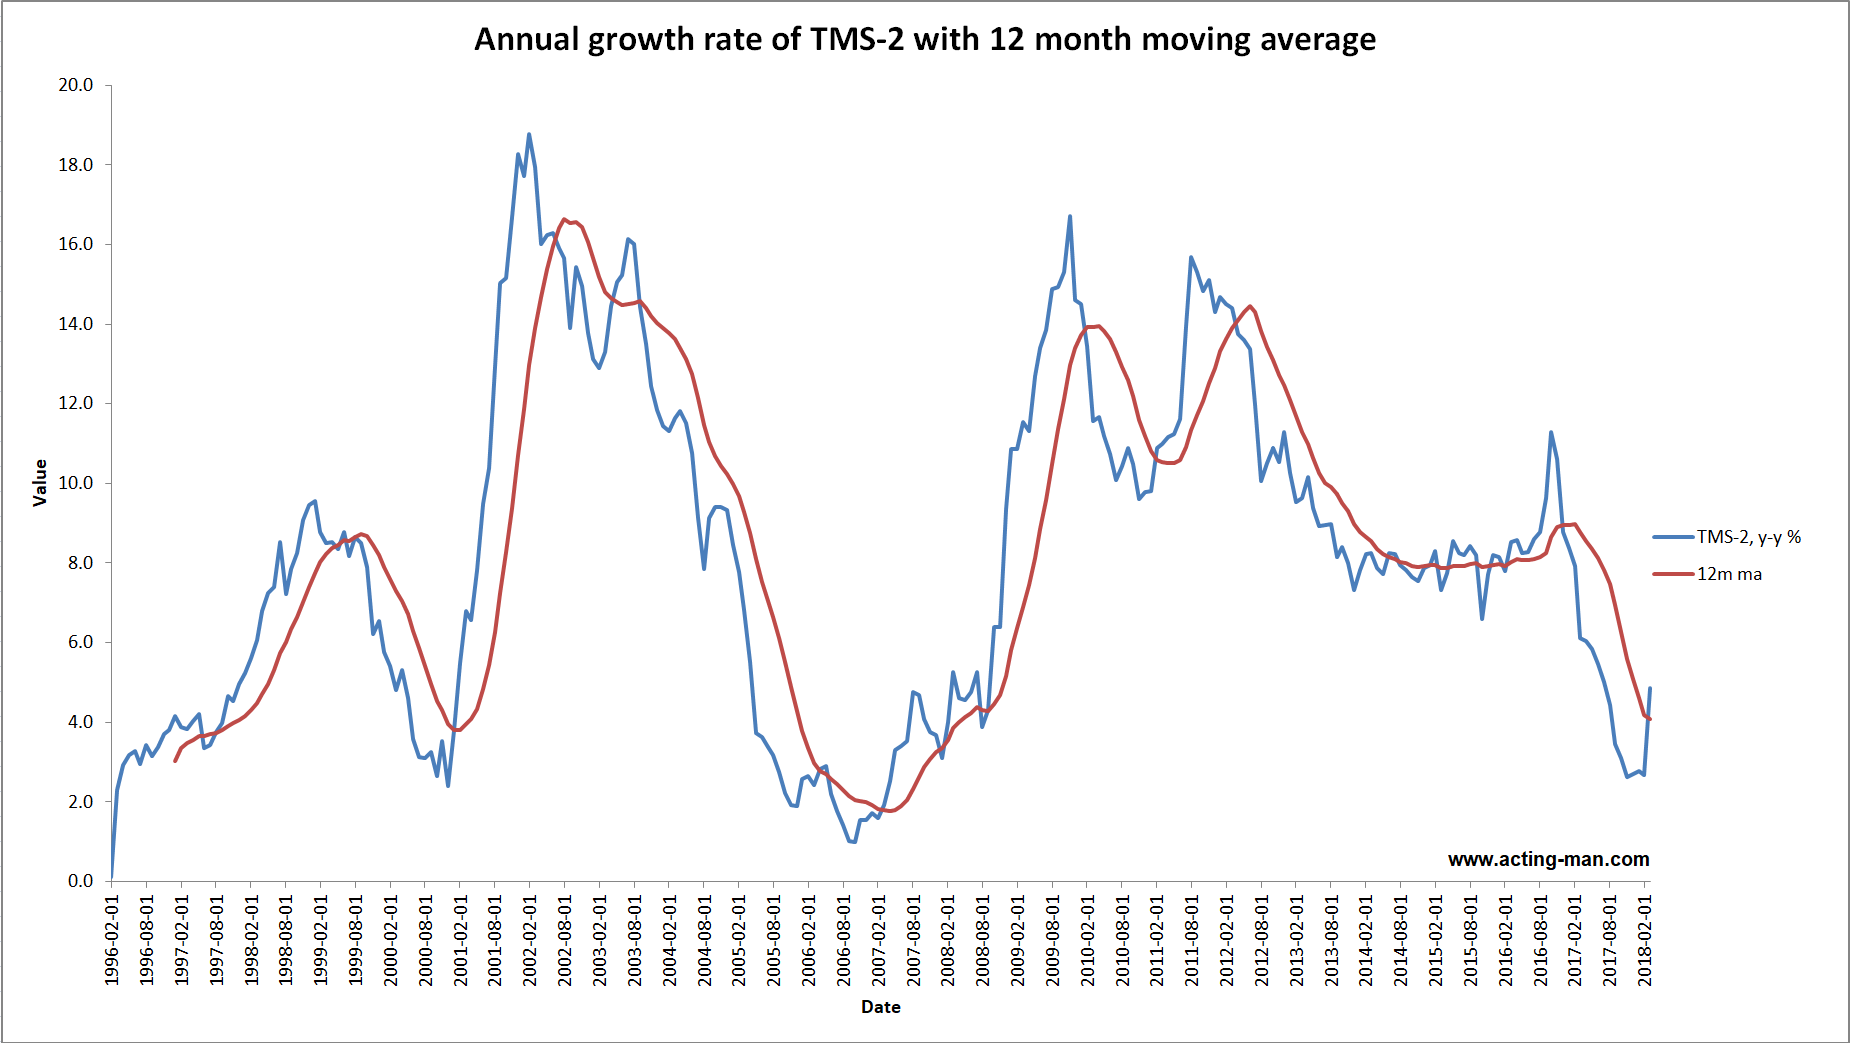 Annual Growth Rate of TMS 2, Feb 1996 - 2018